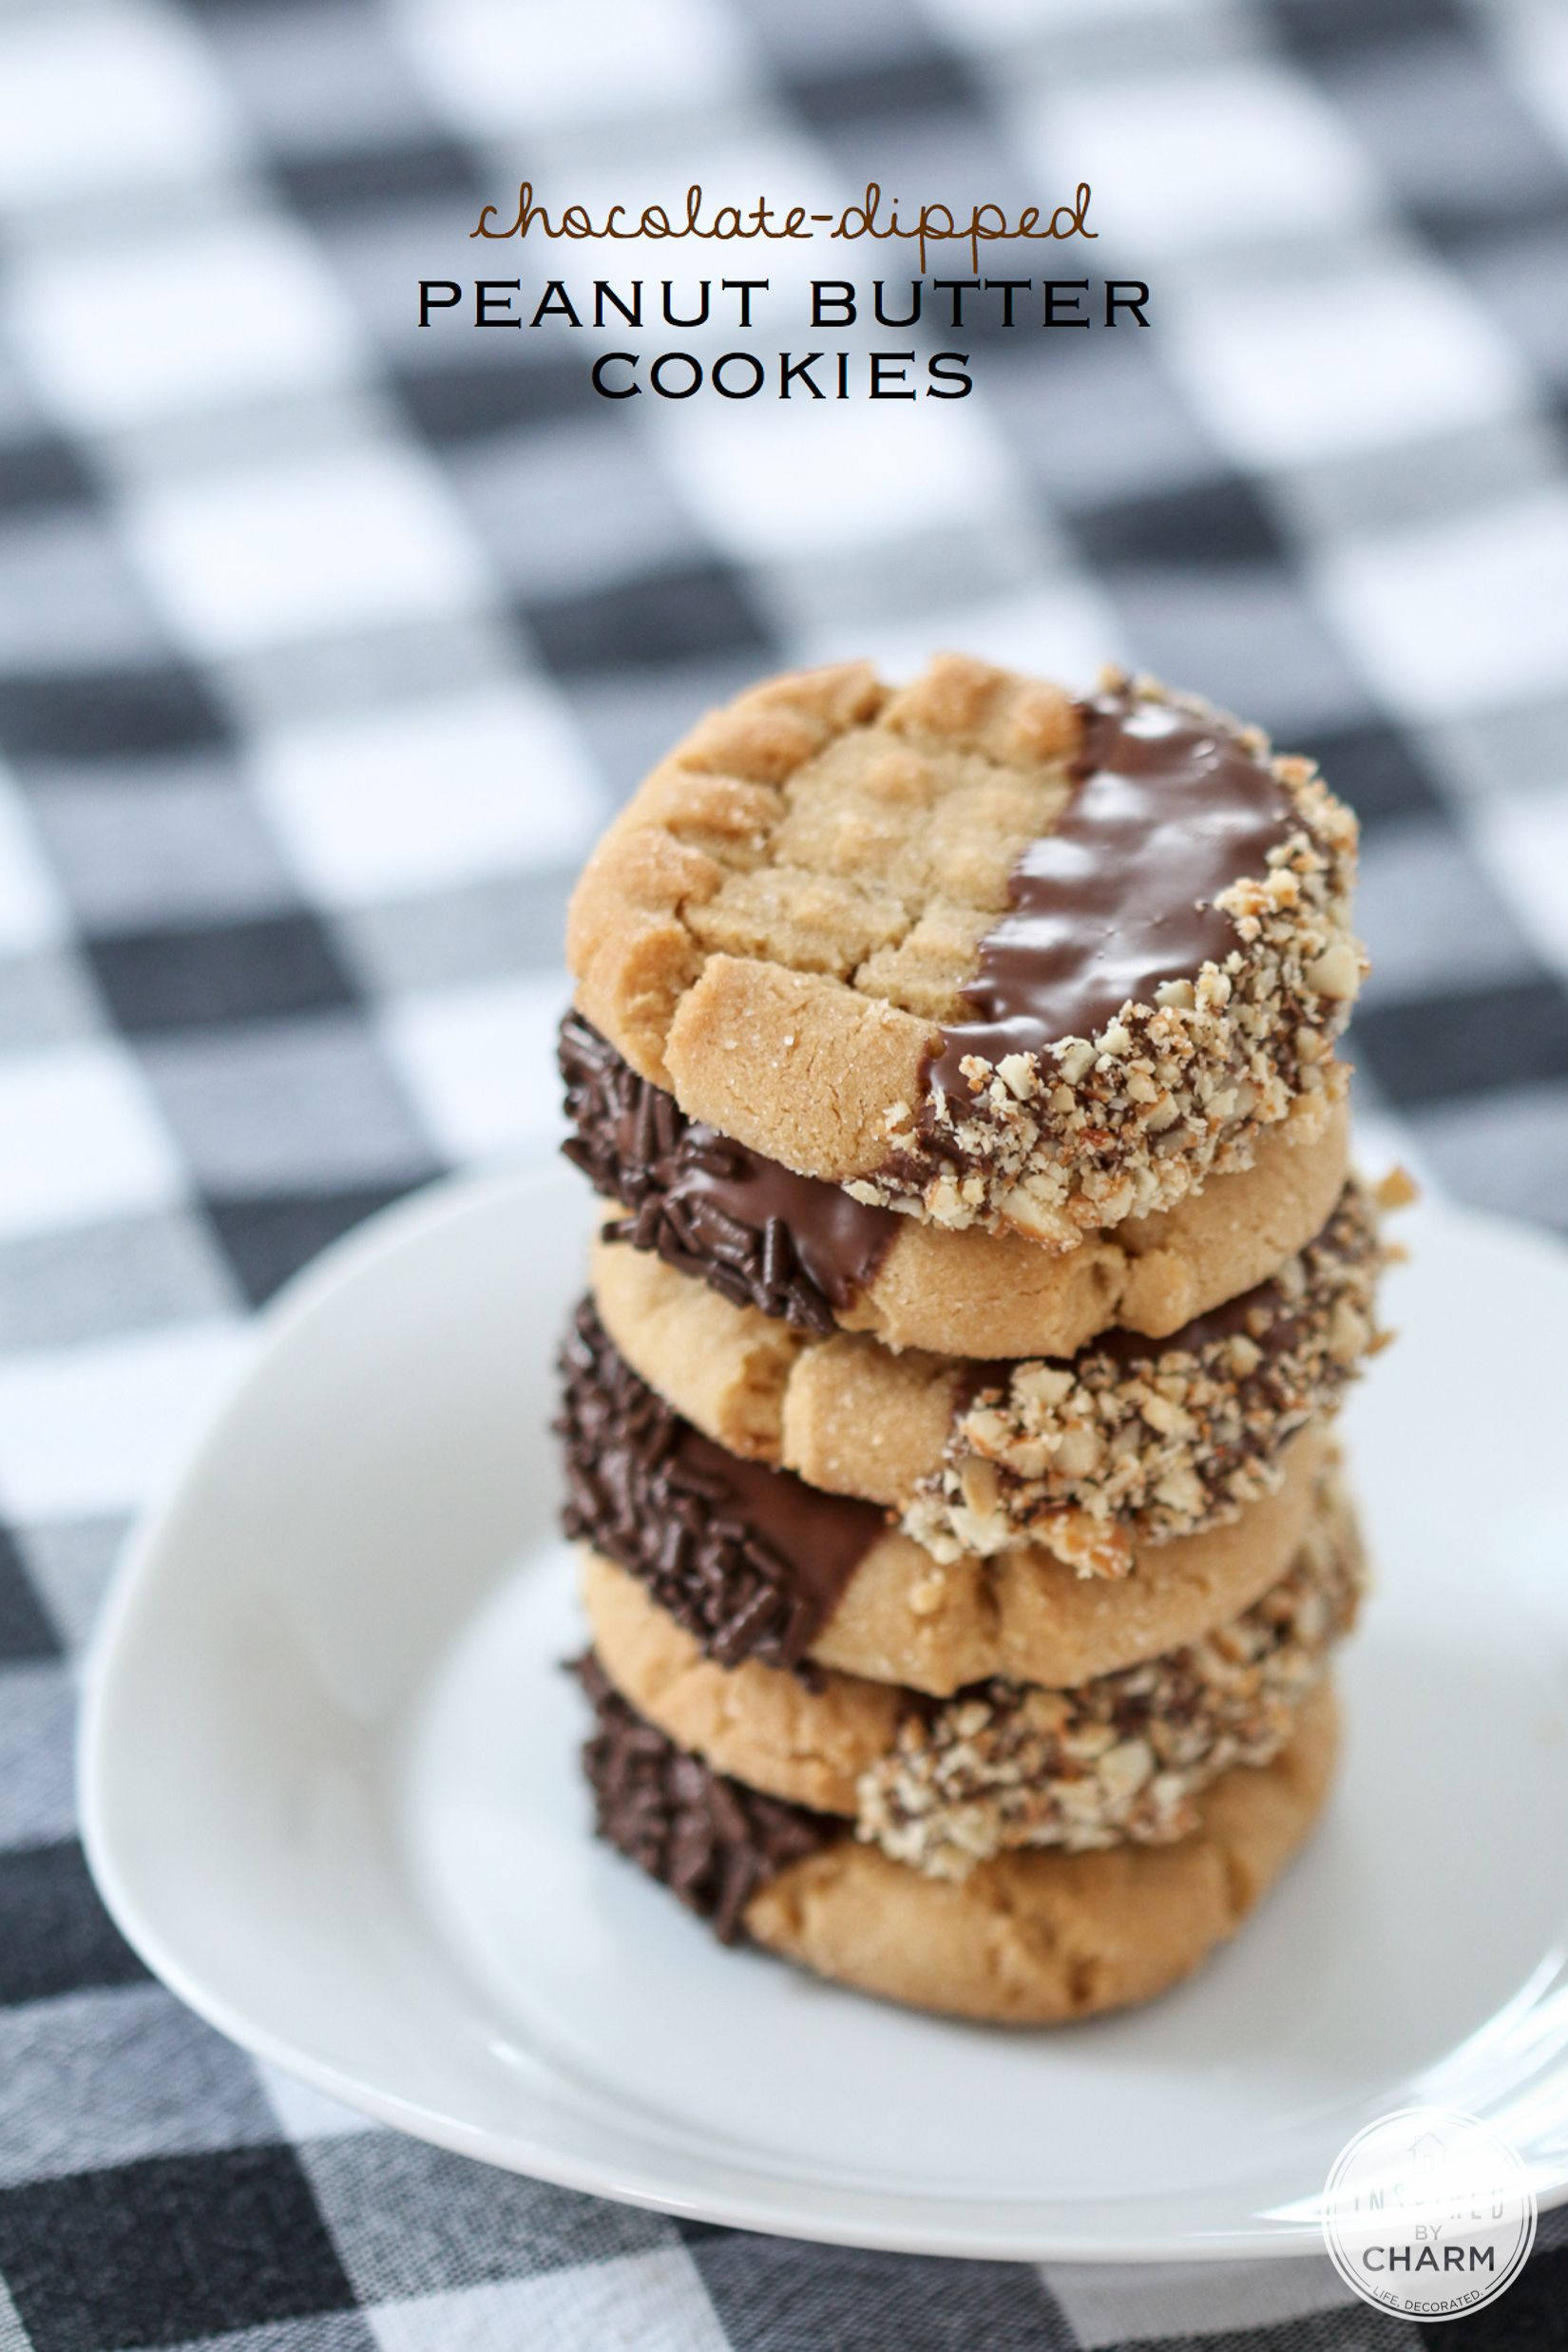 Chocolate-Dipped Peanut Butter Cookies | Inspired by Charm